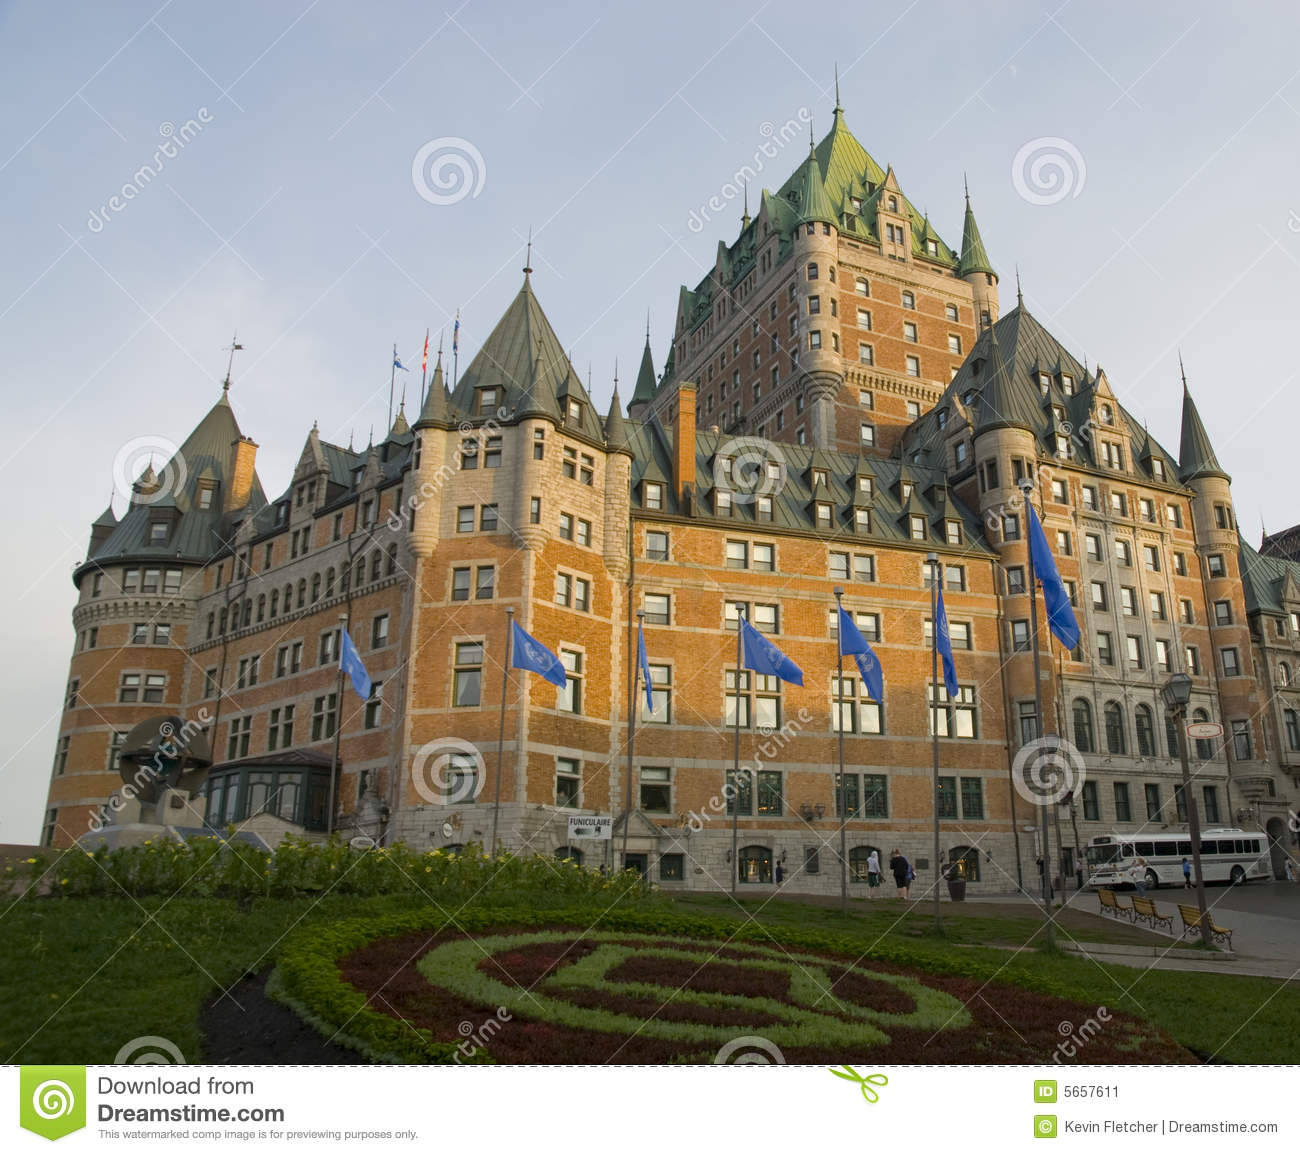 Chateau frontenac in quebec city canada stock image for Design hotel quebec city